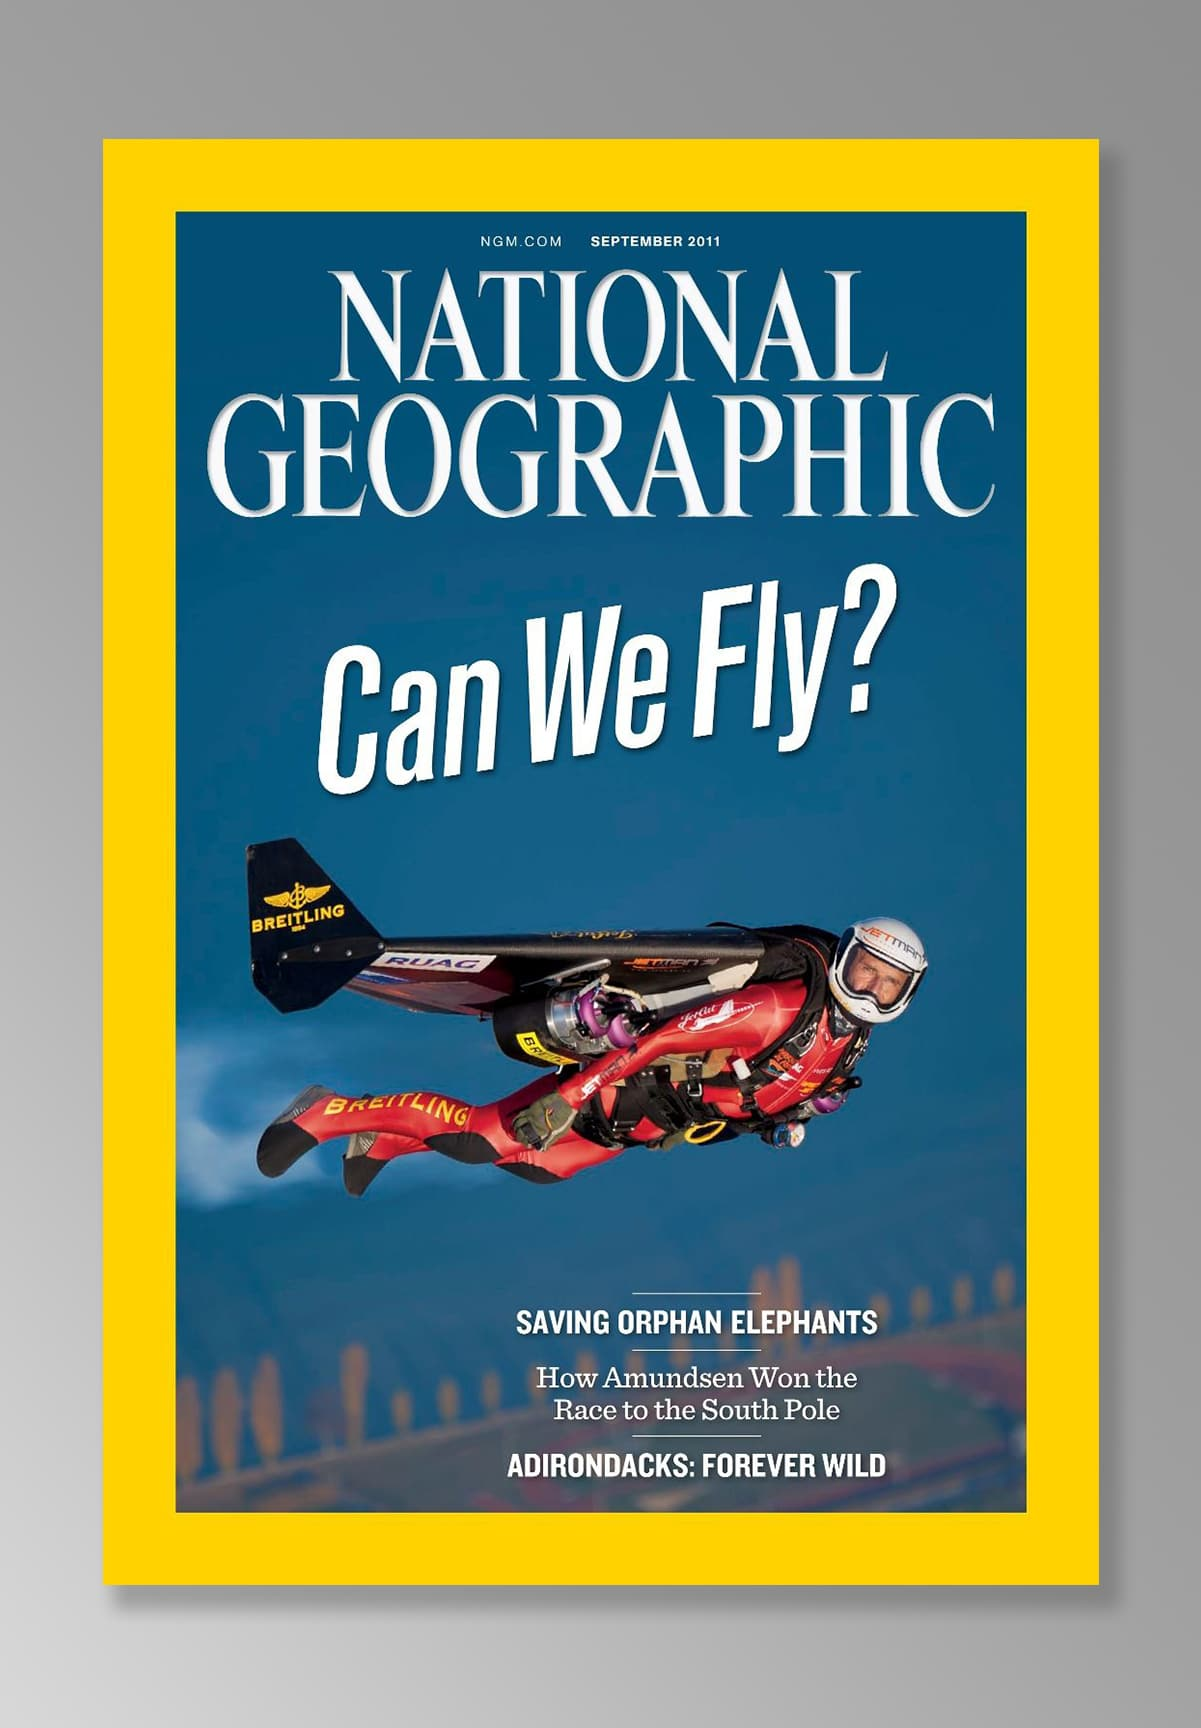 Jetman Yves Rossy dons the cover of National Geographic for a historical shot of his flight in Dubai